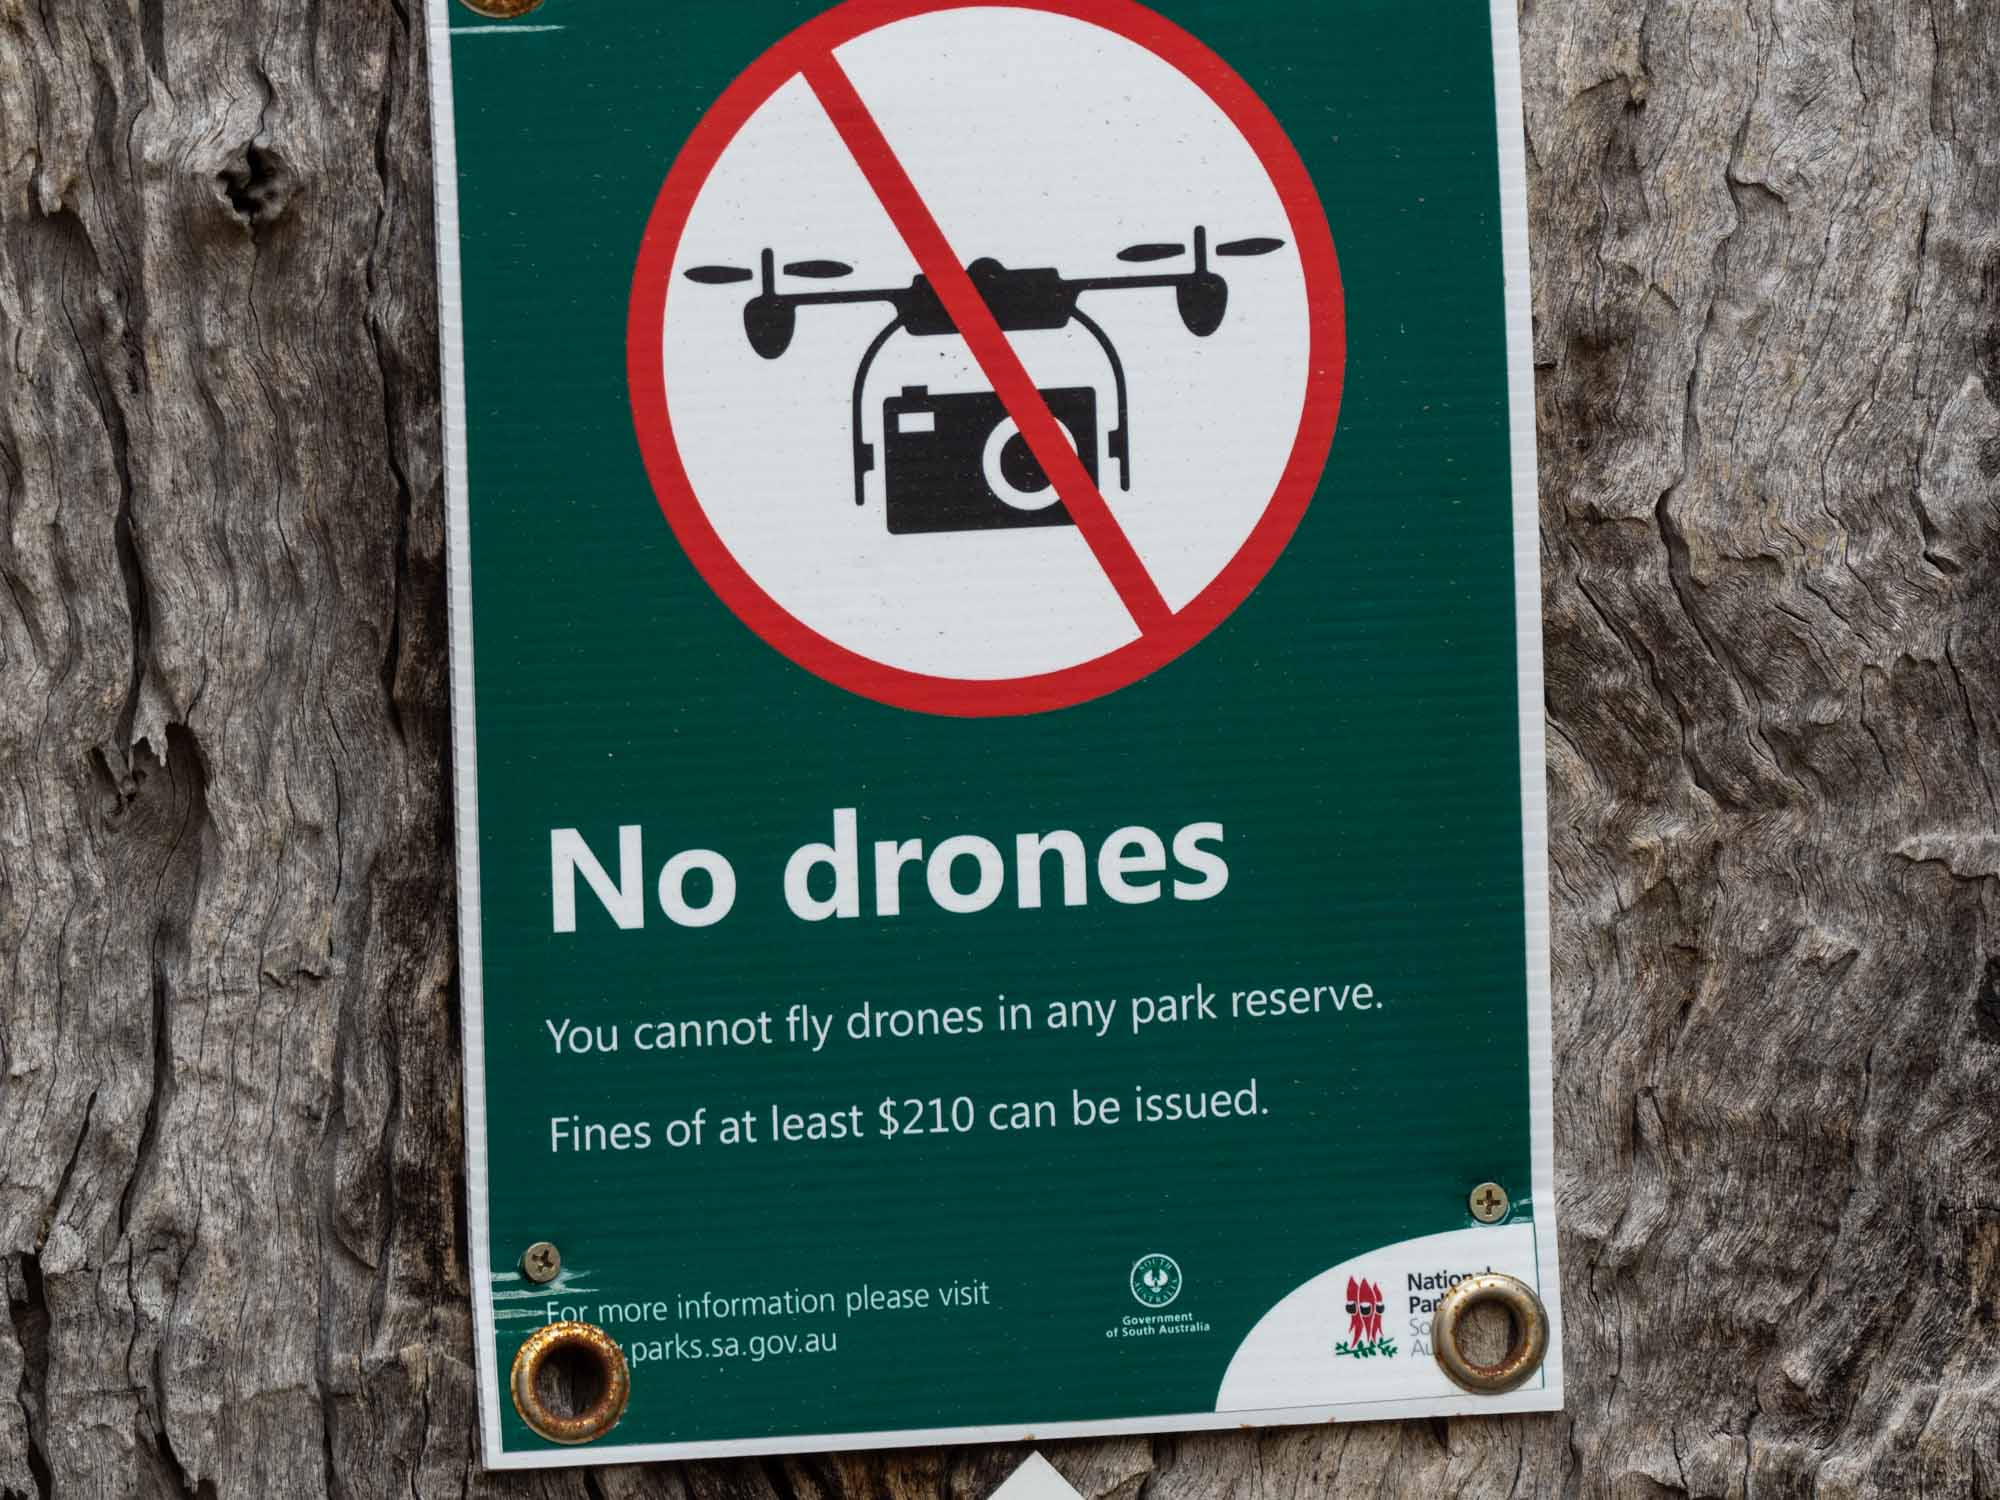 … and no drones! Perfect!!